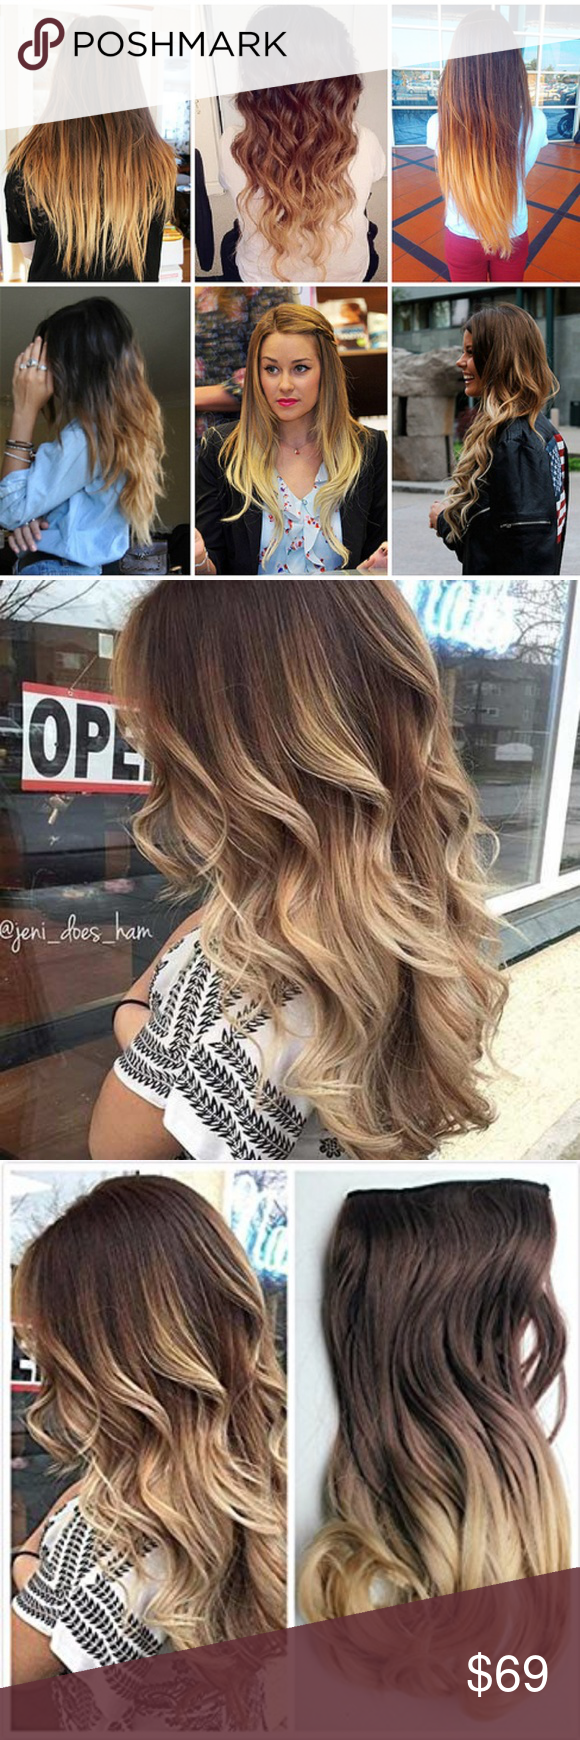 Ombre Blonde Clip in Extension in My Posh Picks Pinterest